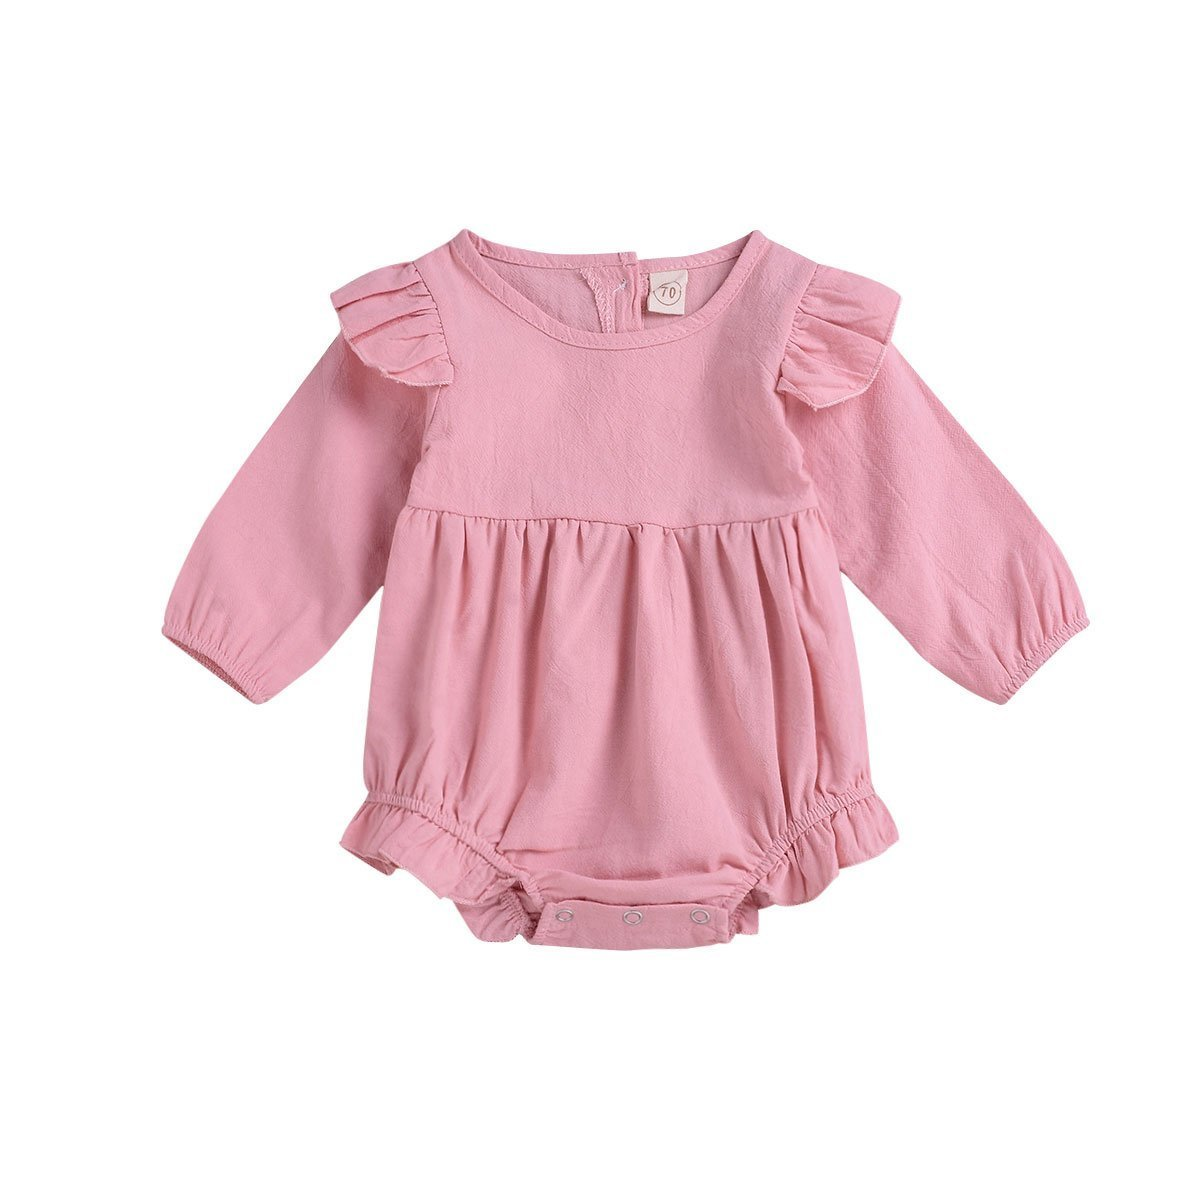 06122bd23f5b Amazon.com  Xmas gift Baby Girl Birthday Clothes Twins Bodysuit Newborn  Romper Infant Ruffles Onesies Princess Sunsuit Outfit  Clothing